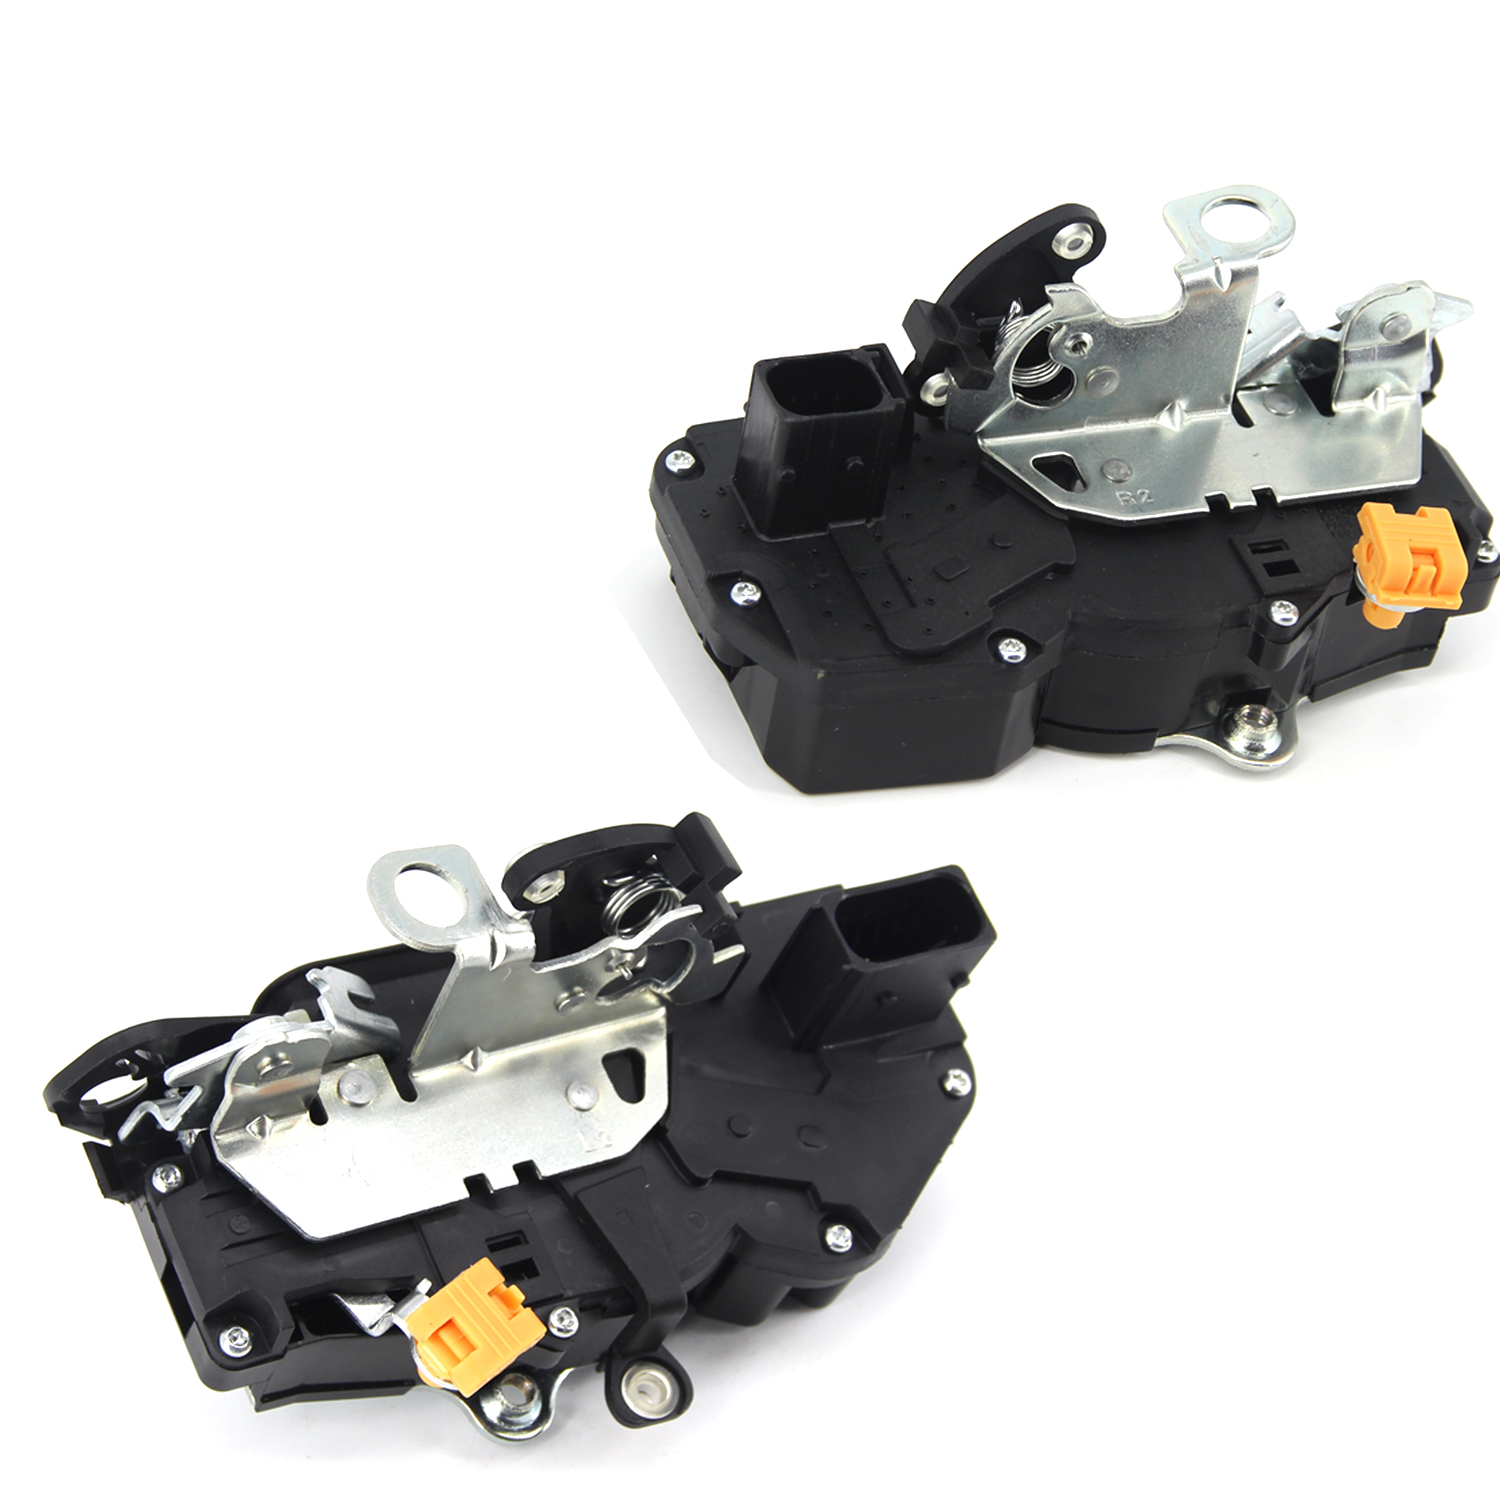 XL1500 XL2500 Suburban 1500//2500 and Cadillac Escalade//ESV Front Driver and Pasenger Kits 931-303 931-304 Door Lock Actuator for 2008 2009 GMC Yukon Chevy Tahoe